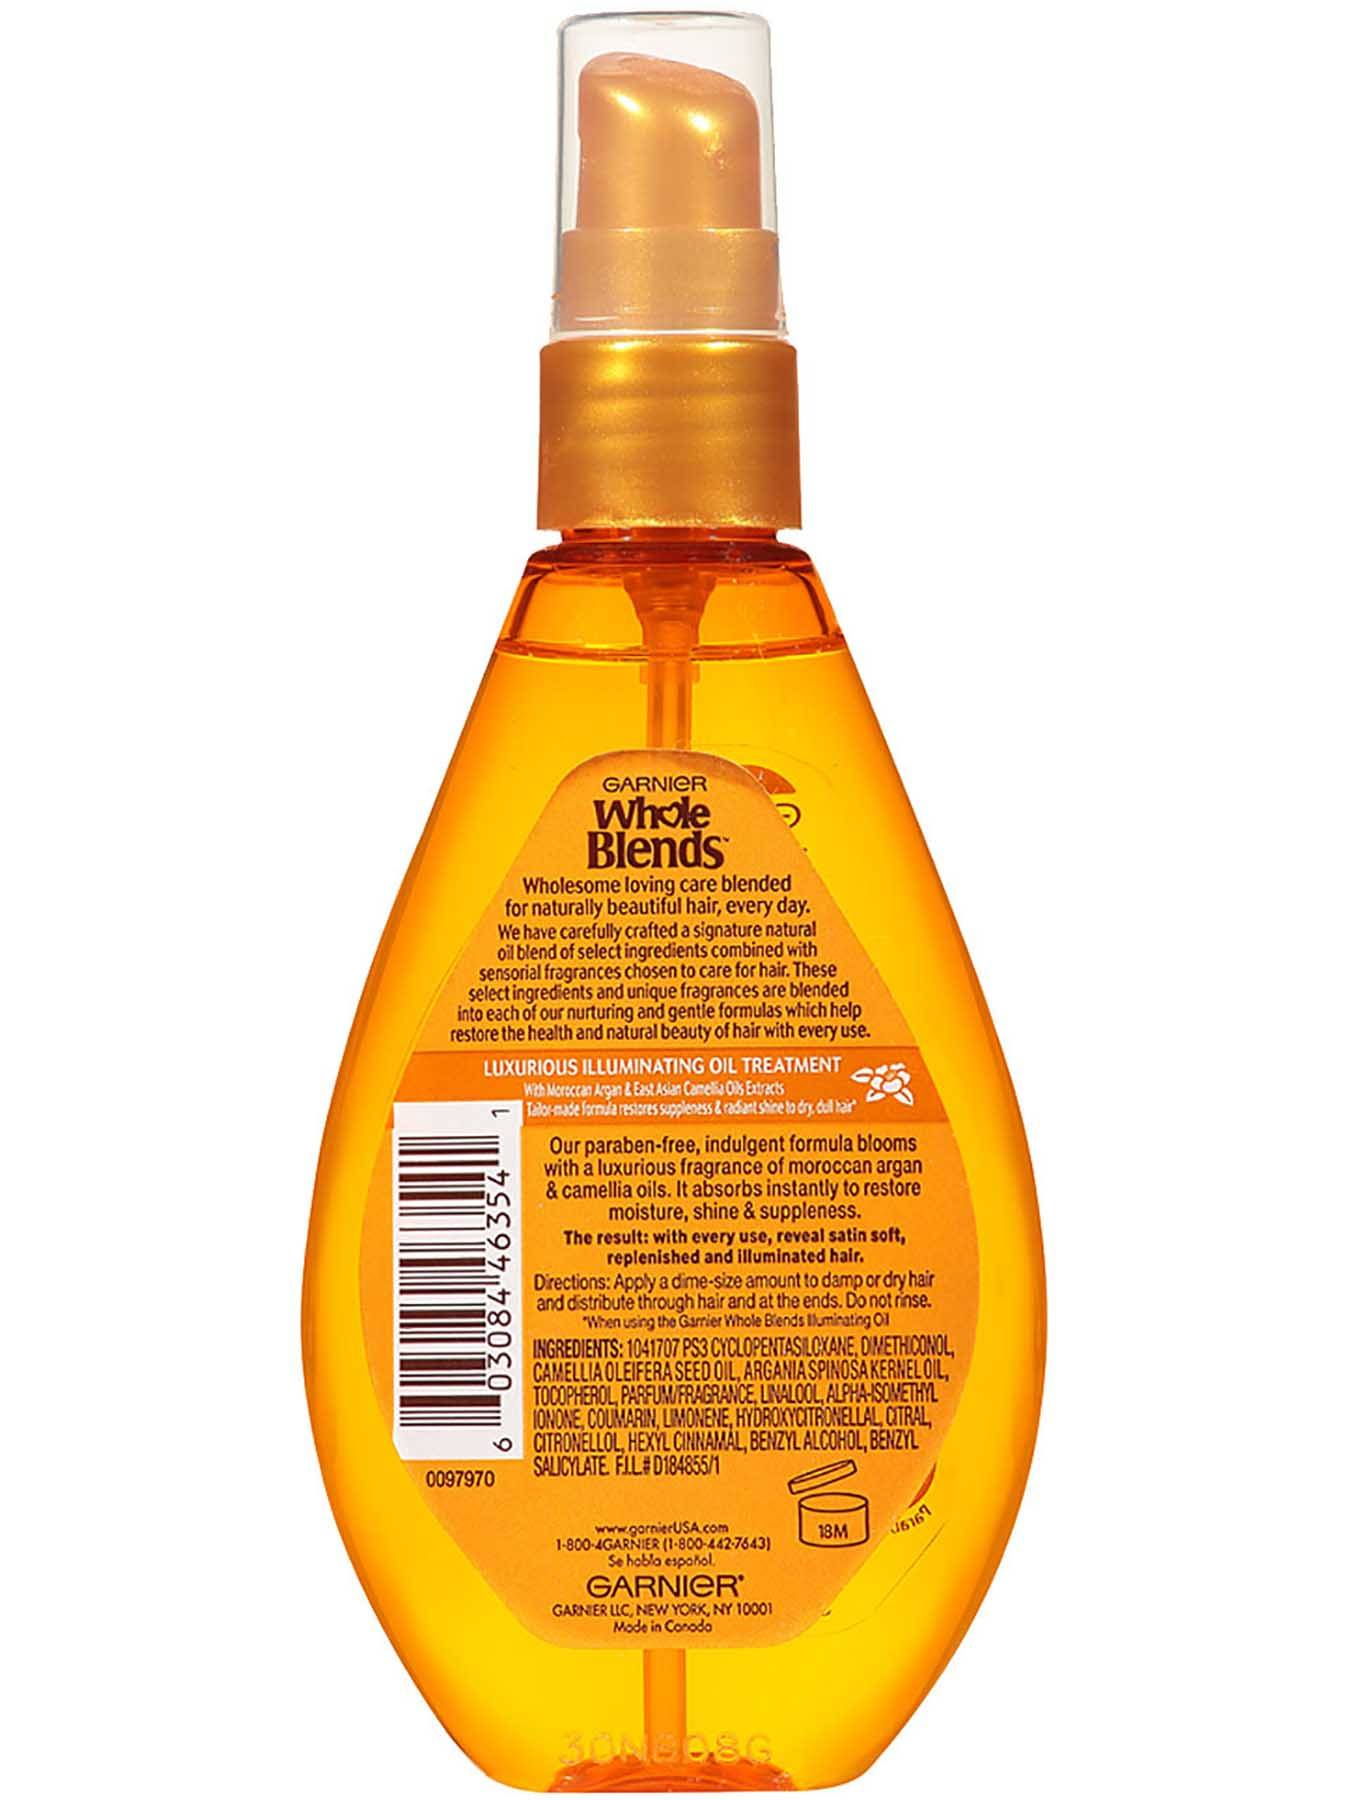 Garnier Whole Blends Illuminating Oil Moroccan Argan Camellia Oils Extracts Back Of Bottle